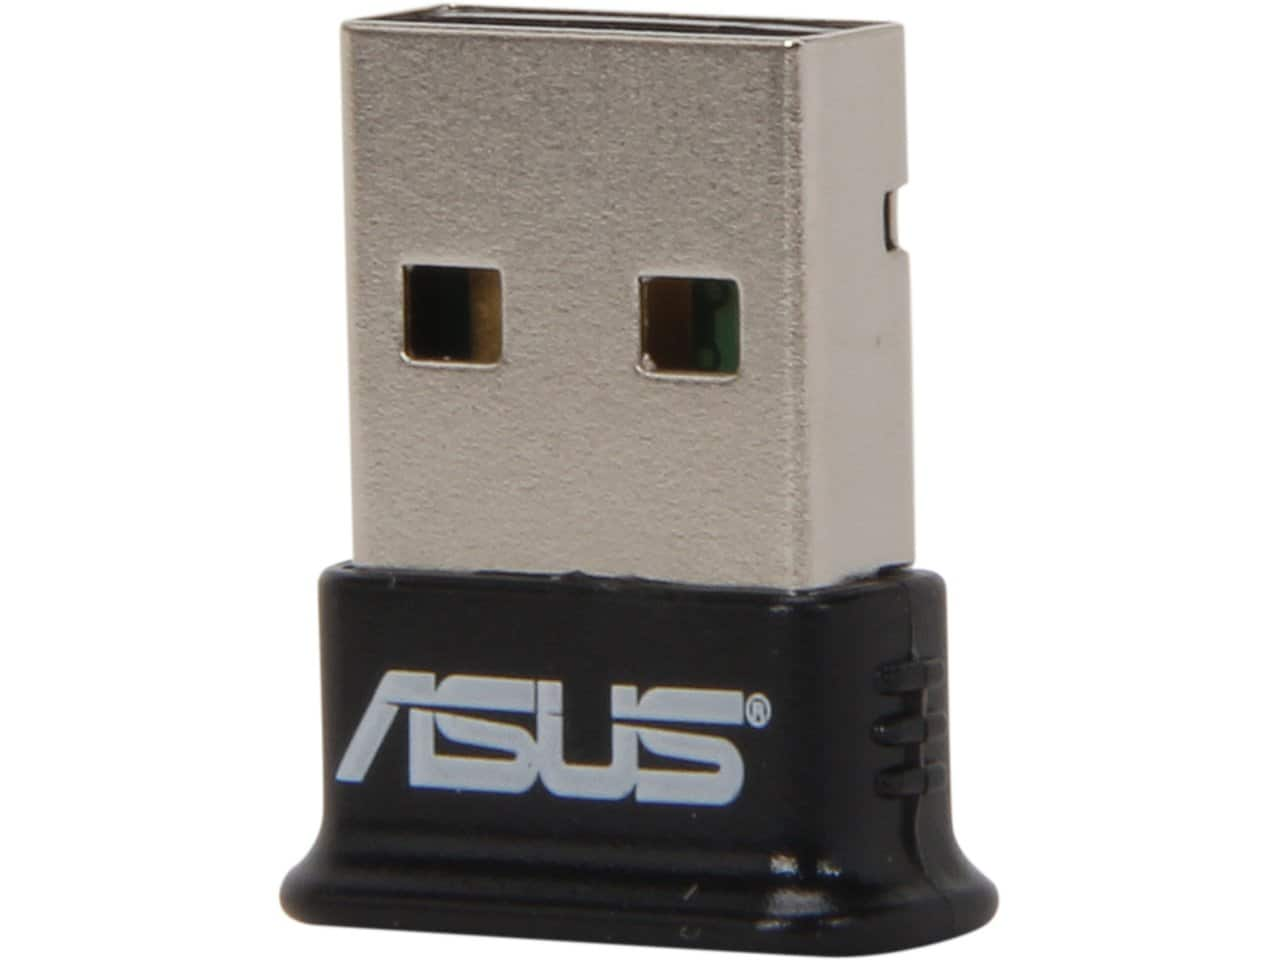 Asus USB Bluetooth 4.0 Adapter  $5 after $5 Rebate & More + Free Shipping